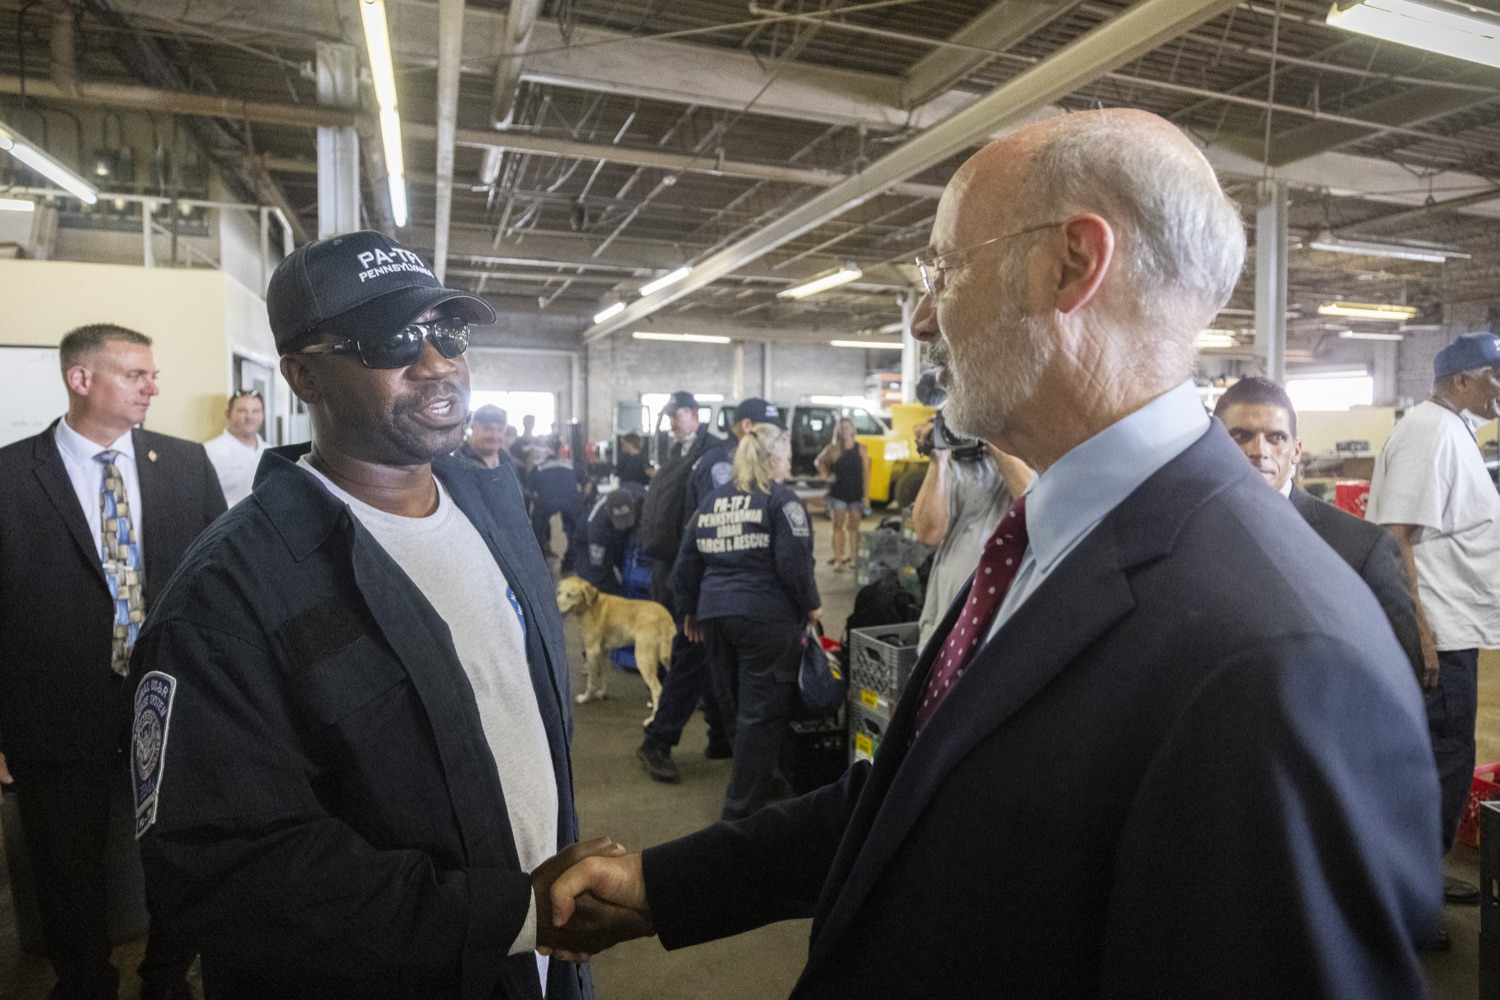 """<a href=""""https://filesource.wostreaming.net/commonwealthofpa/photo/18936_gov_taskforceone_dz_018.jpg"""" target=""""_blank"""">⇣Download Photo<br></a>Governor Tom Wolf speaking to returning Pennsylvania-Task Force 1. Members.Governor Tom Wolf thanked members of Pennsylvania-Task Force 1 (PA- TF1), who returned today to Philadelphia after spending two weeks assisting with search and rescue efforts at the site of the recent deadly building collapse in Surfside, Florida.  Philadelphia, Pa.  July 16, 2021"""